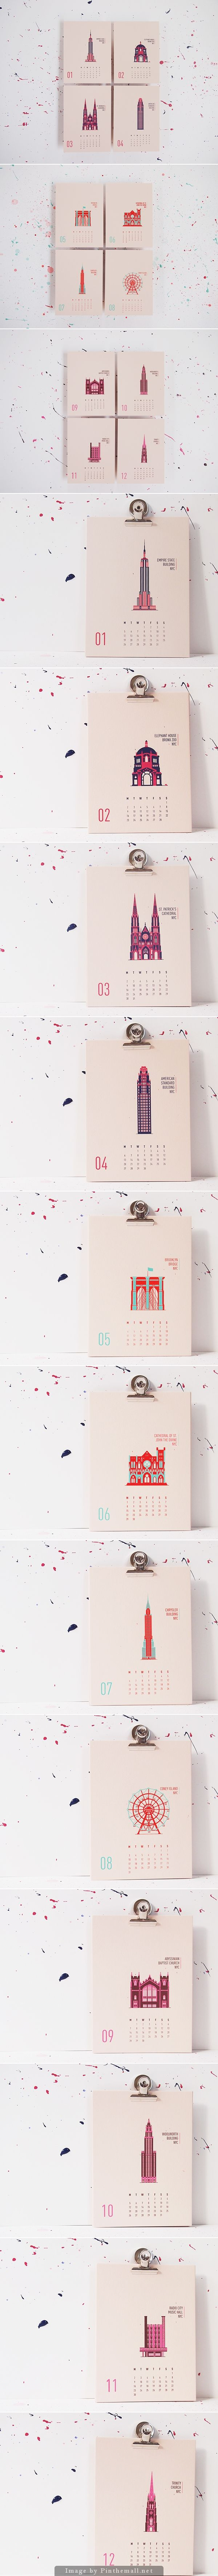 New York City 2015 Calendar by Marieken Hensen